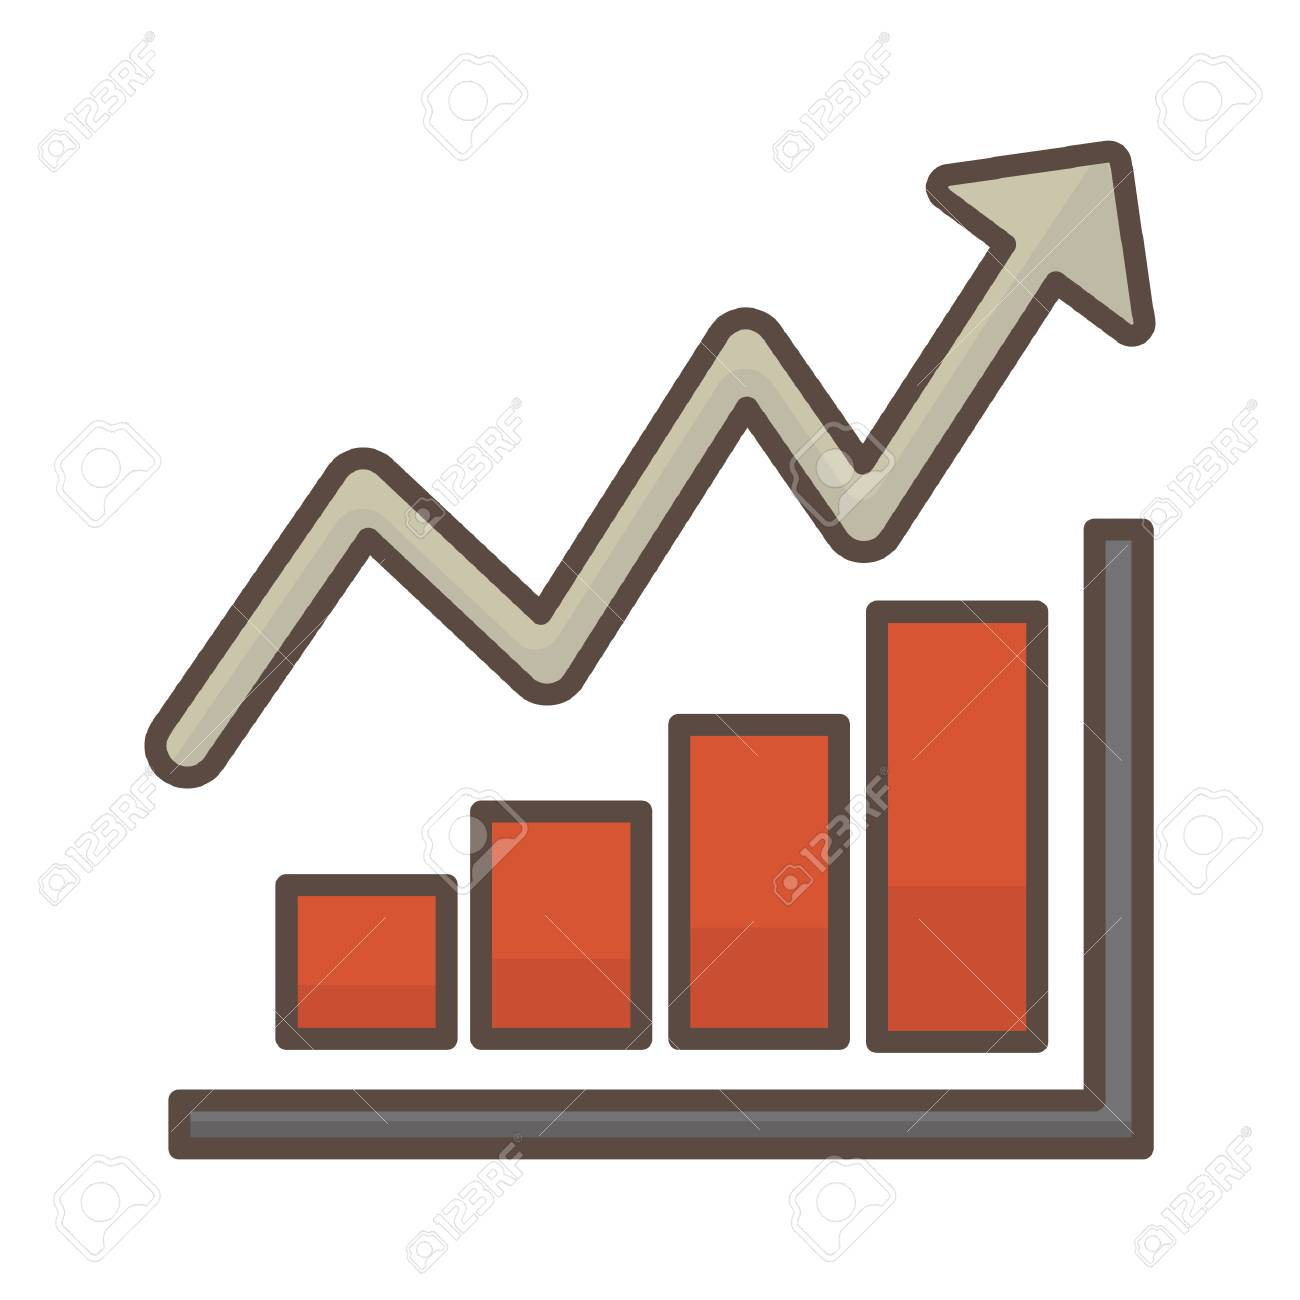 bar graph with arrow going up royalty free cliparts, vectors, and